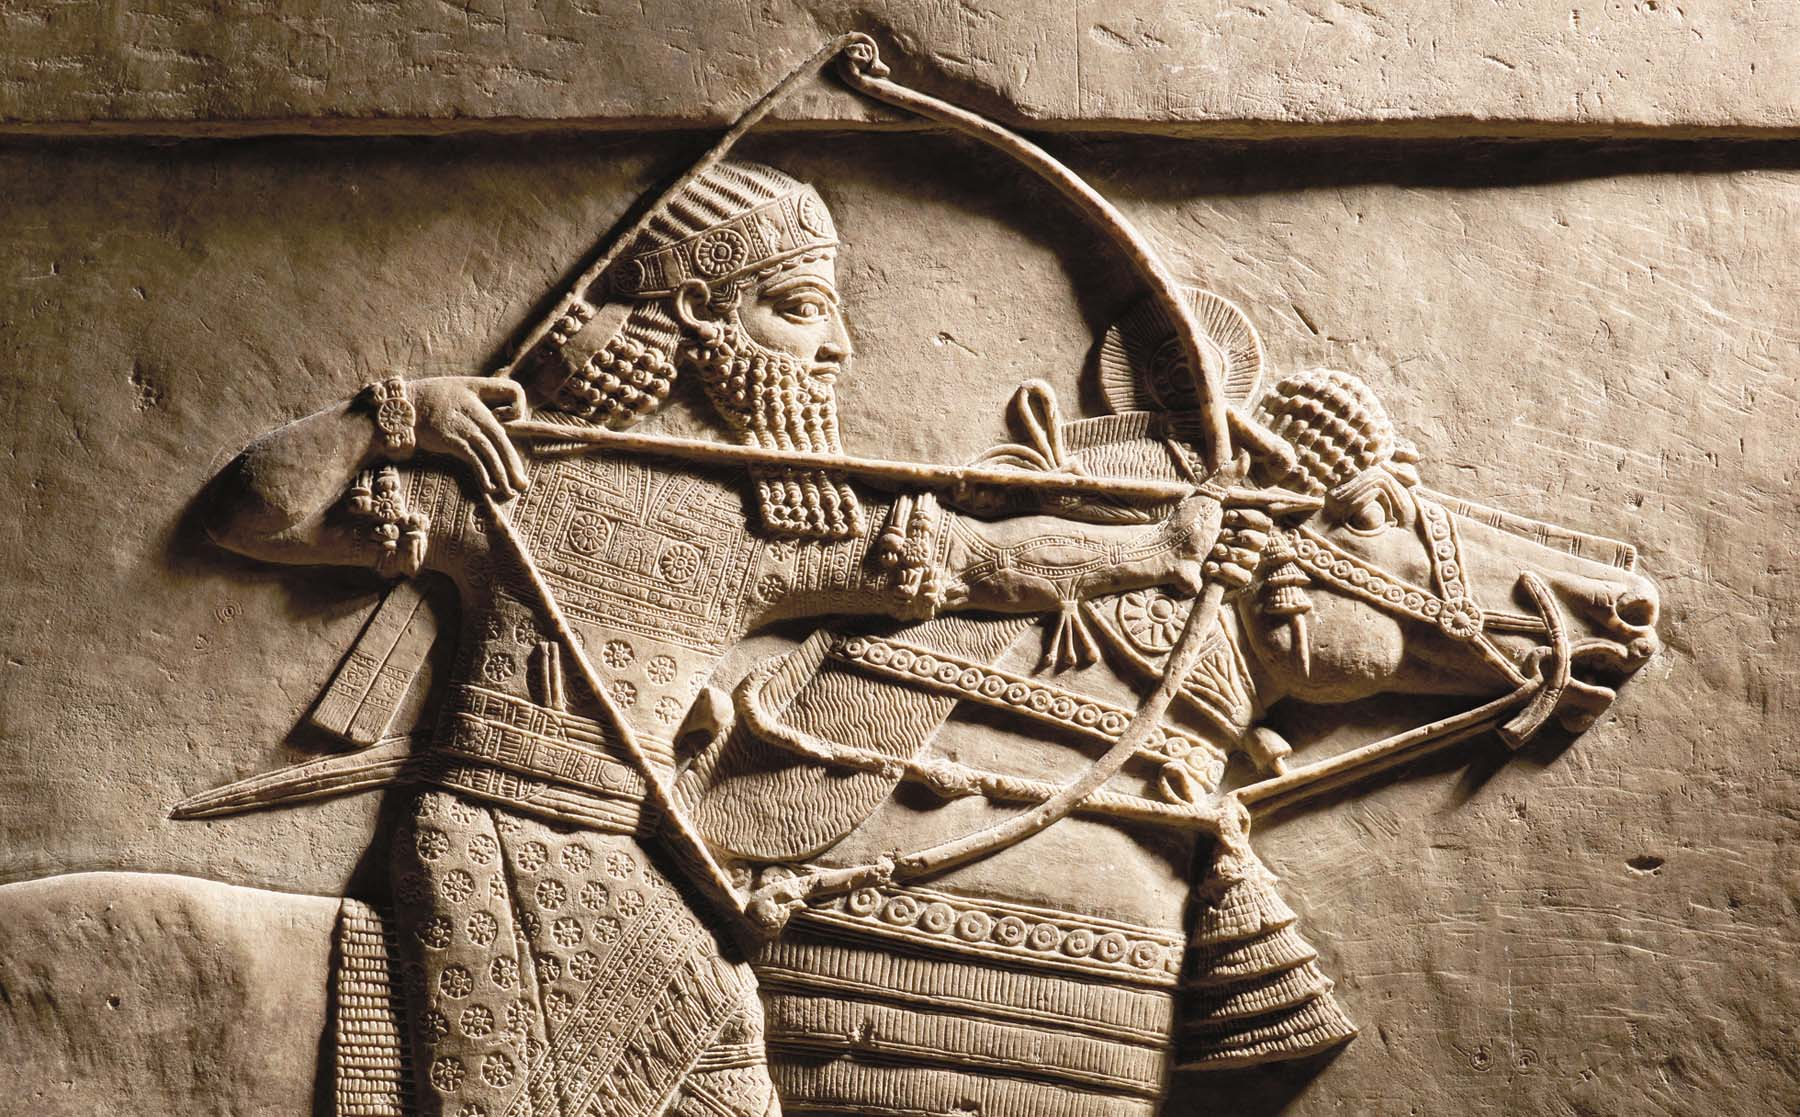 A sculpture shows Ashurbanipal hunting on hosrseback. (British Museum)